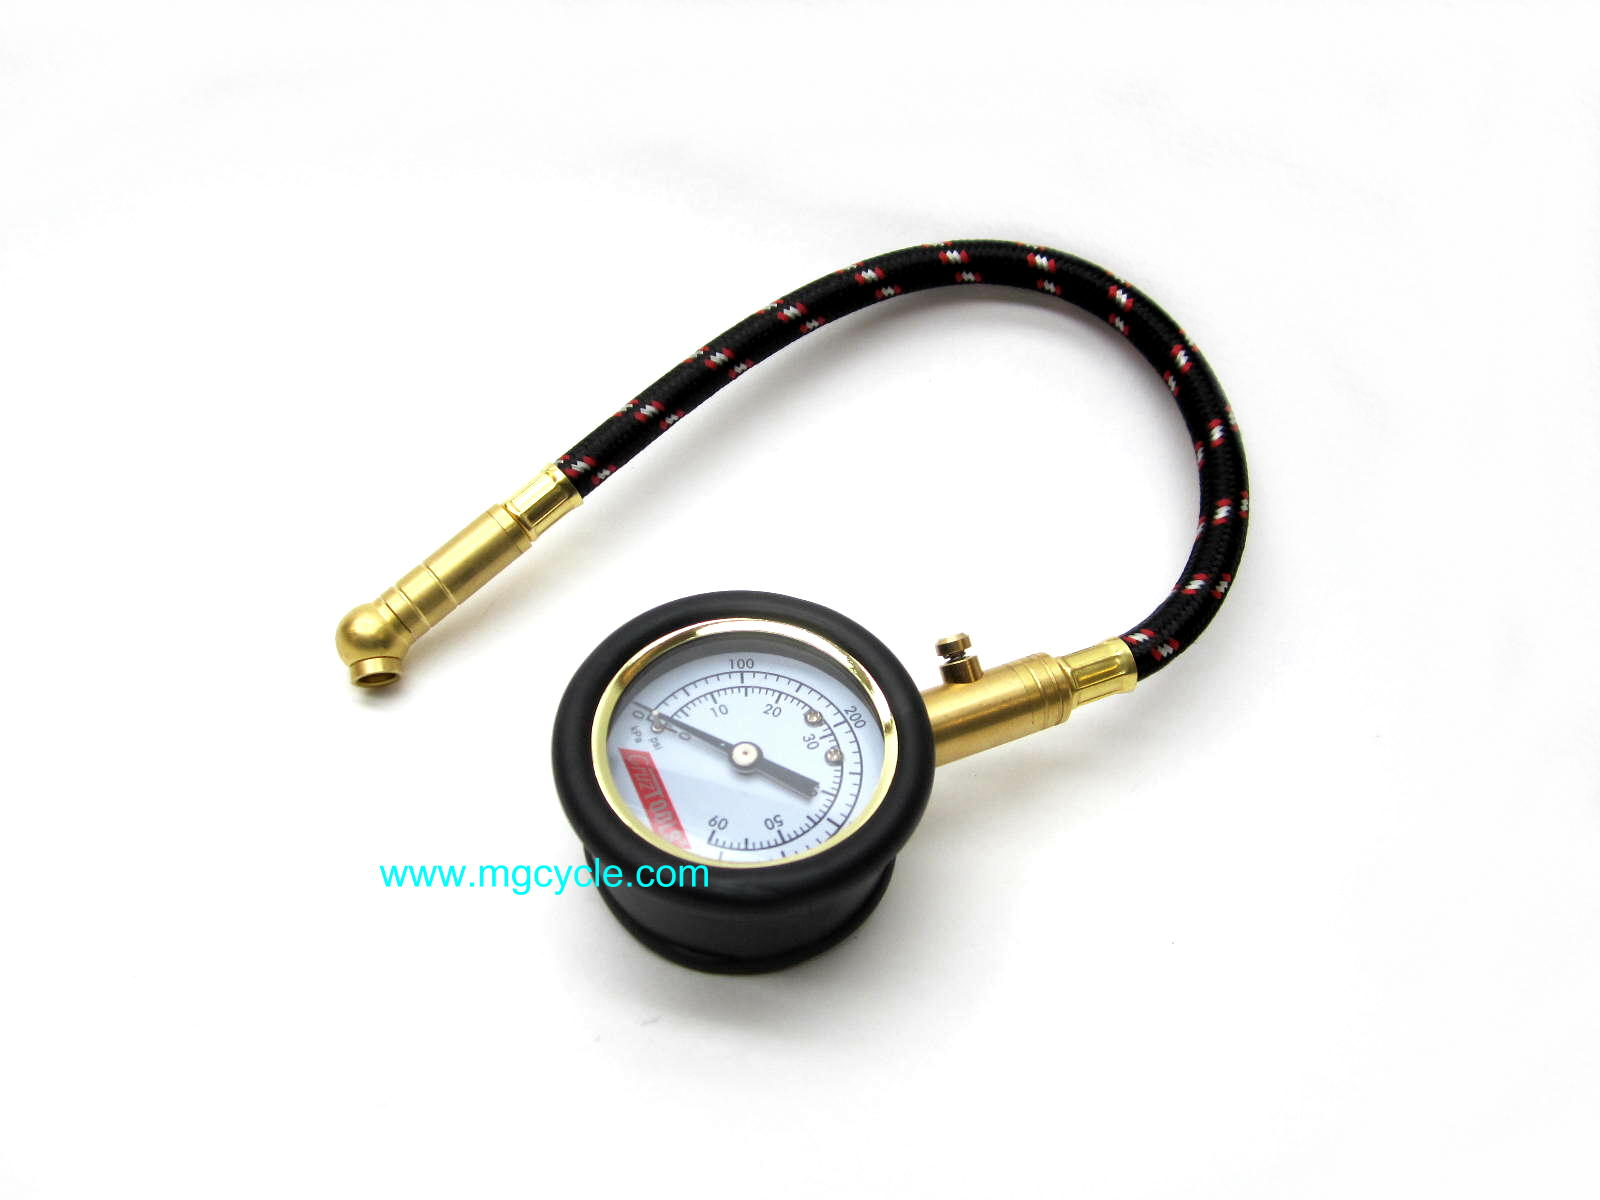 Dial type tire pressure gauge with rubber cover, 0-60 psi